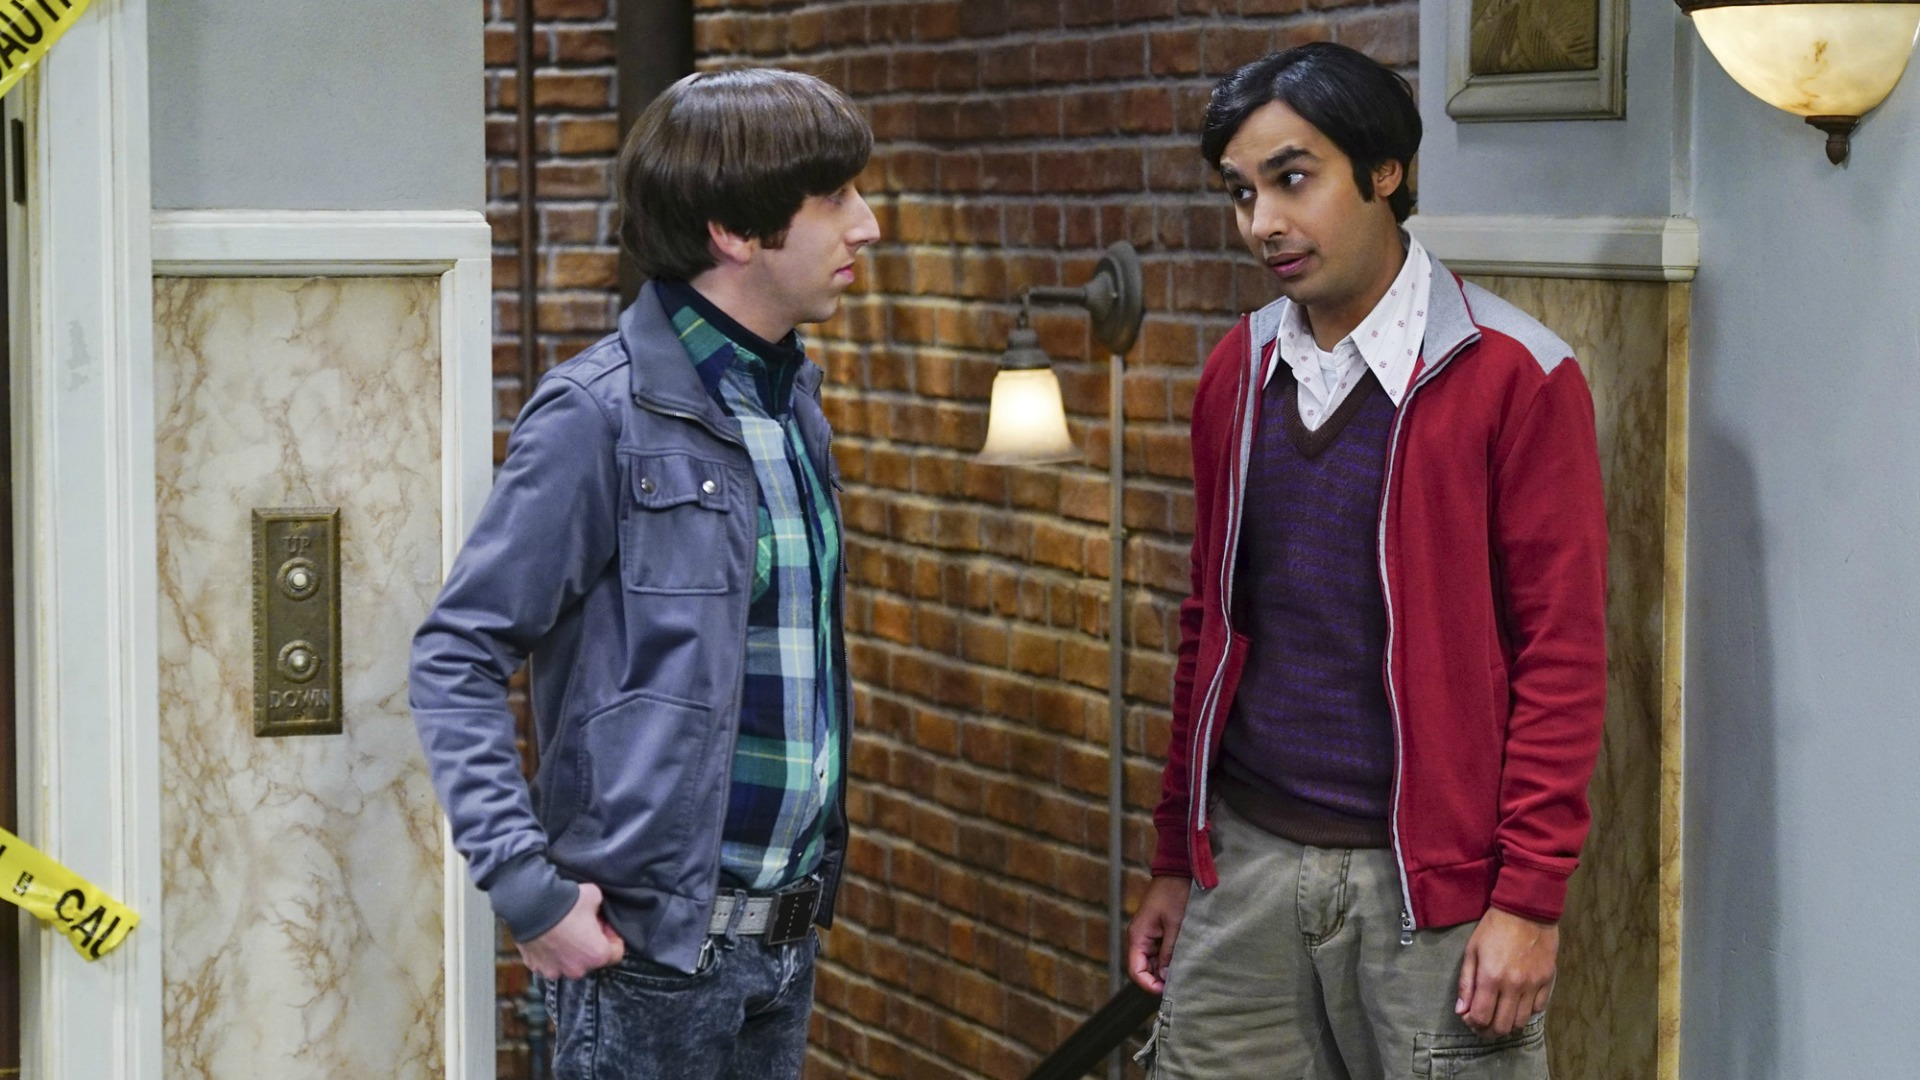 Howard and Raj disagree in the hallway.